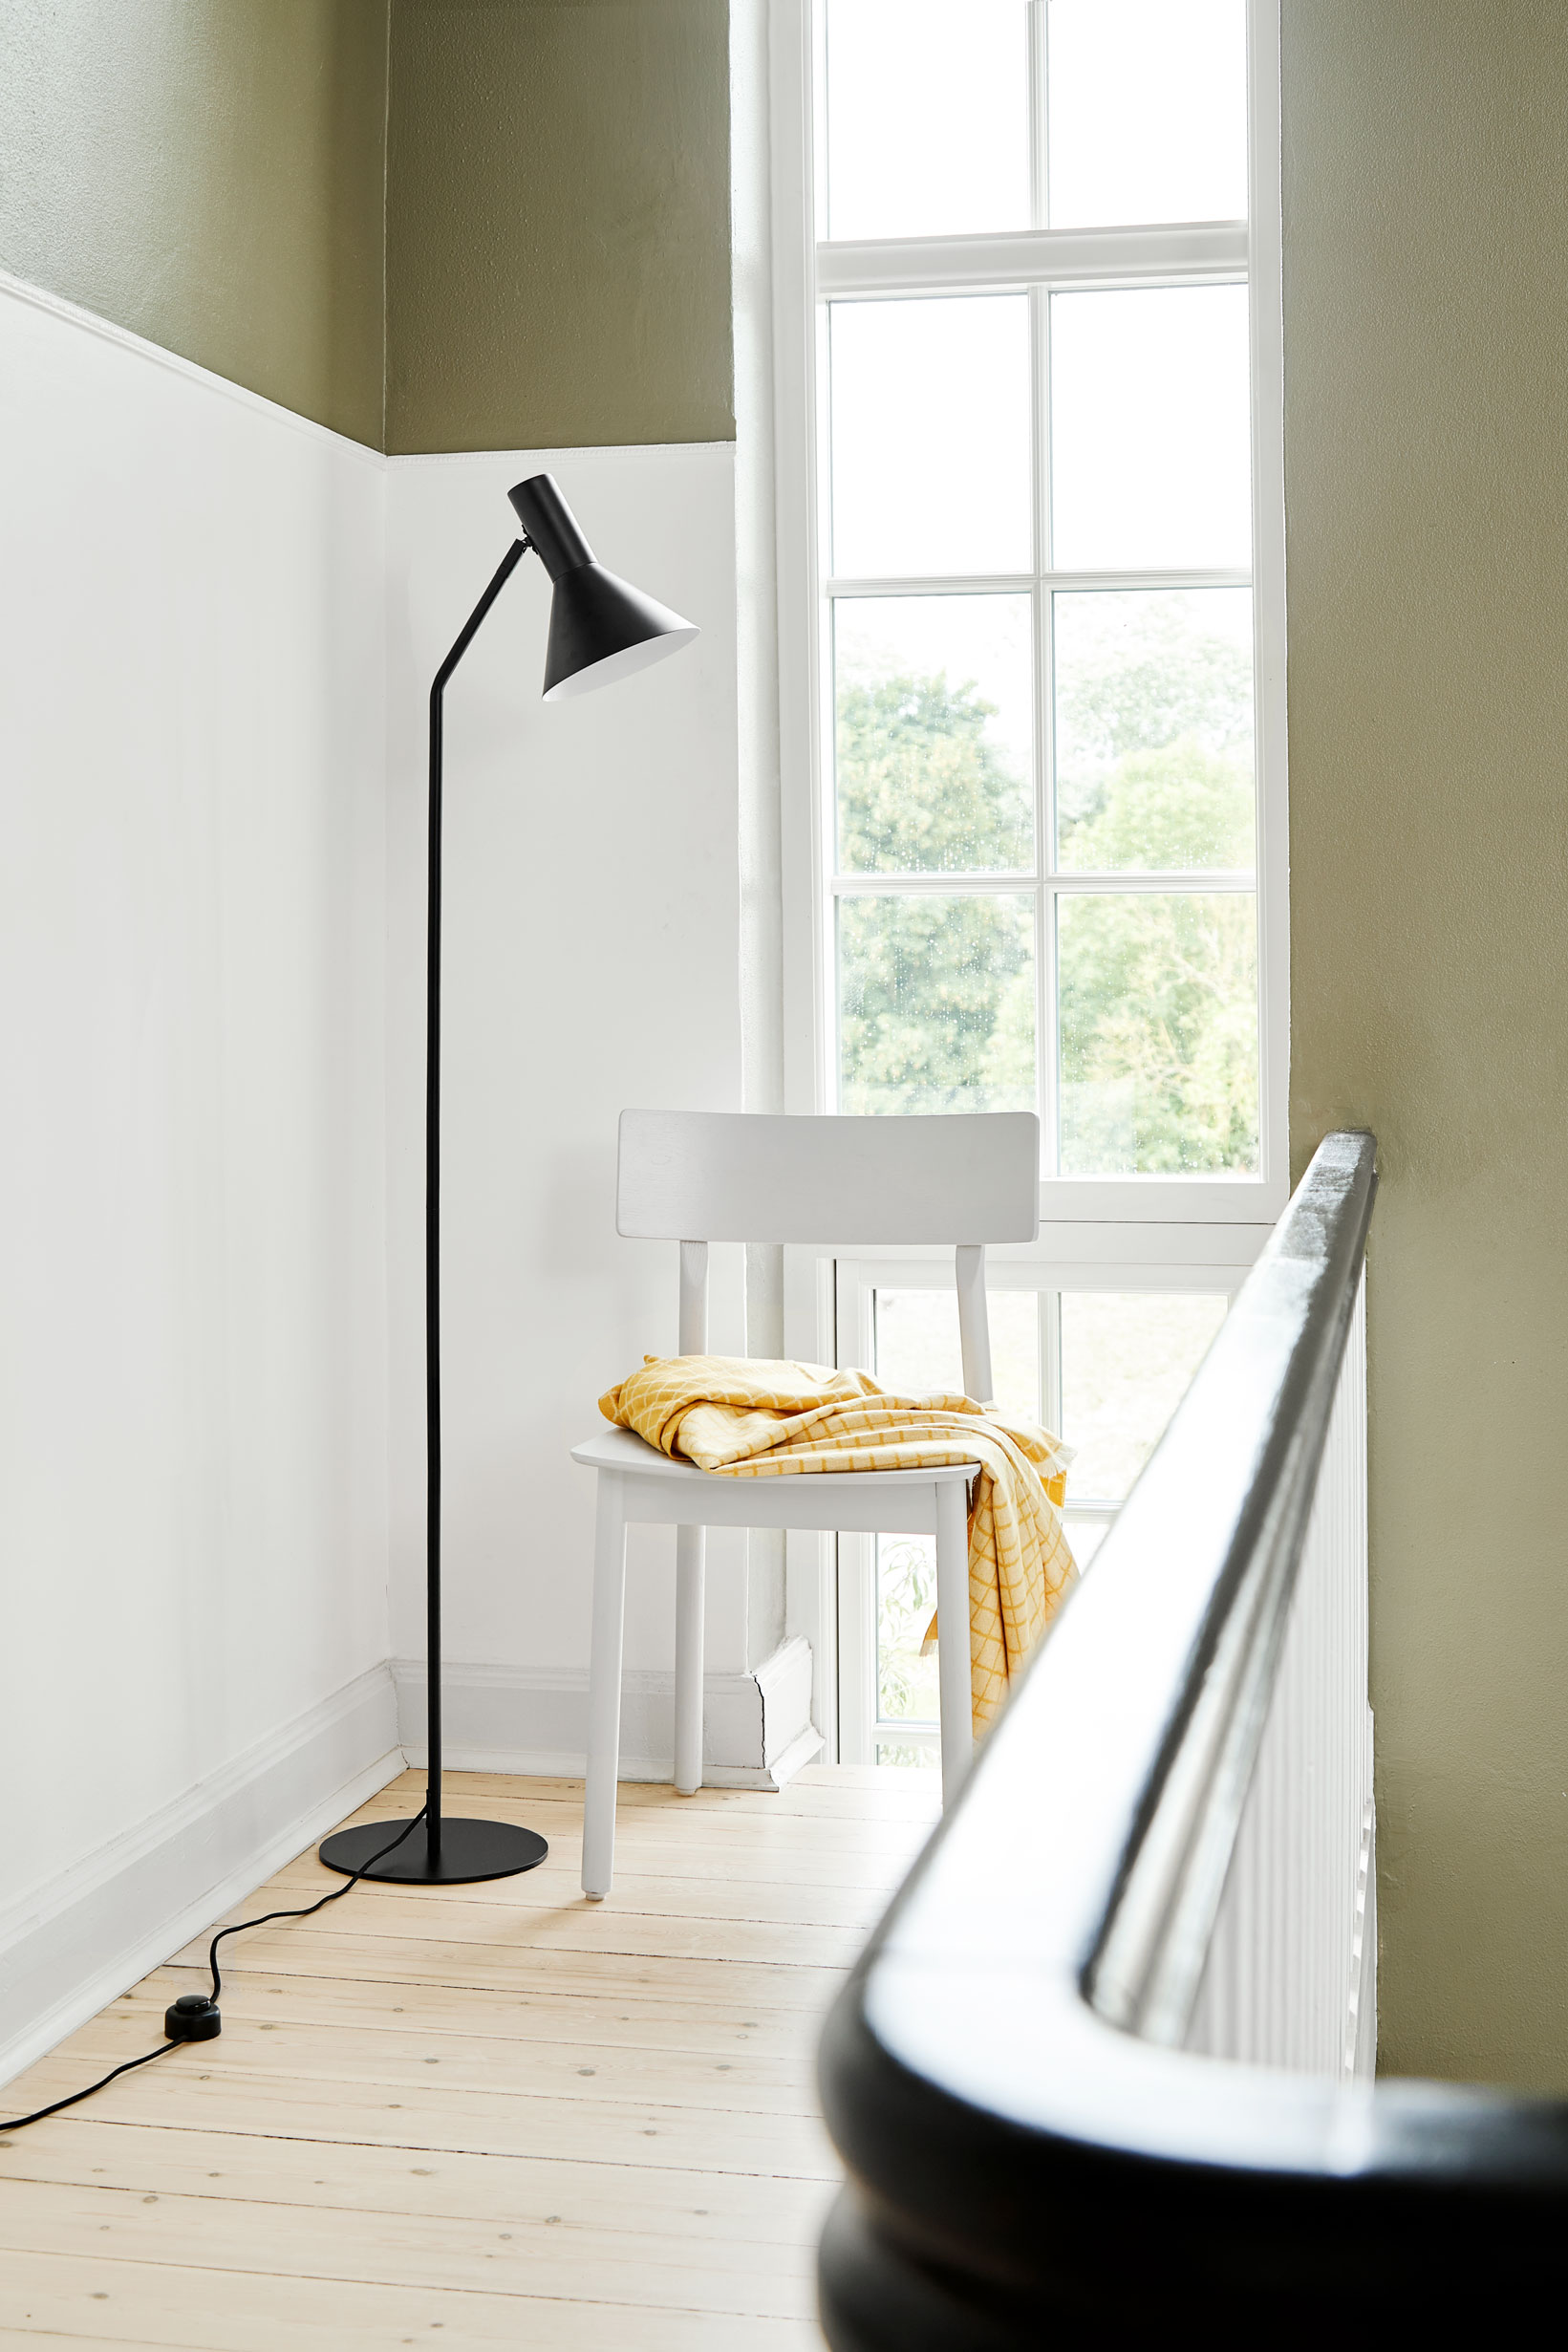 Lyss-floor-lamp-black-matt---Lifestyle-Obdrupgård-2509.jpg